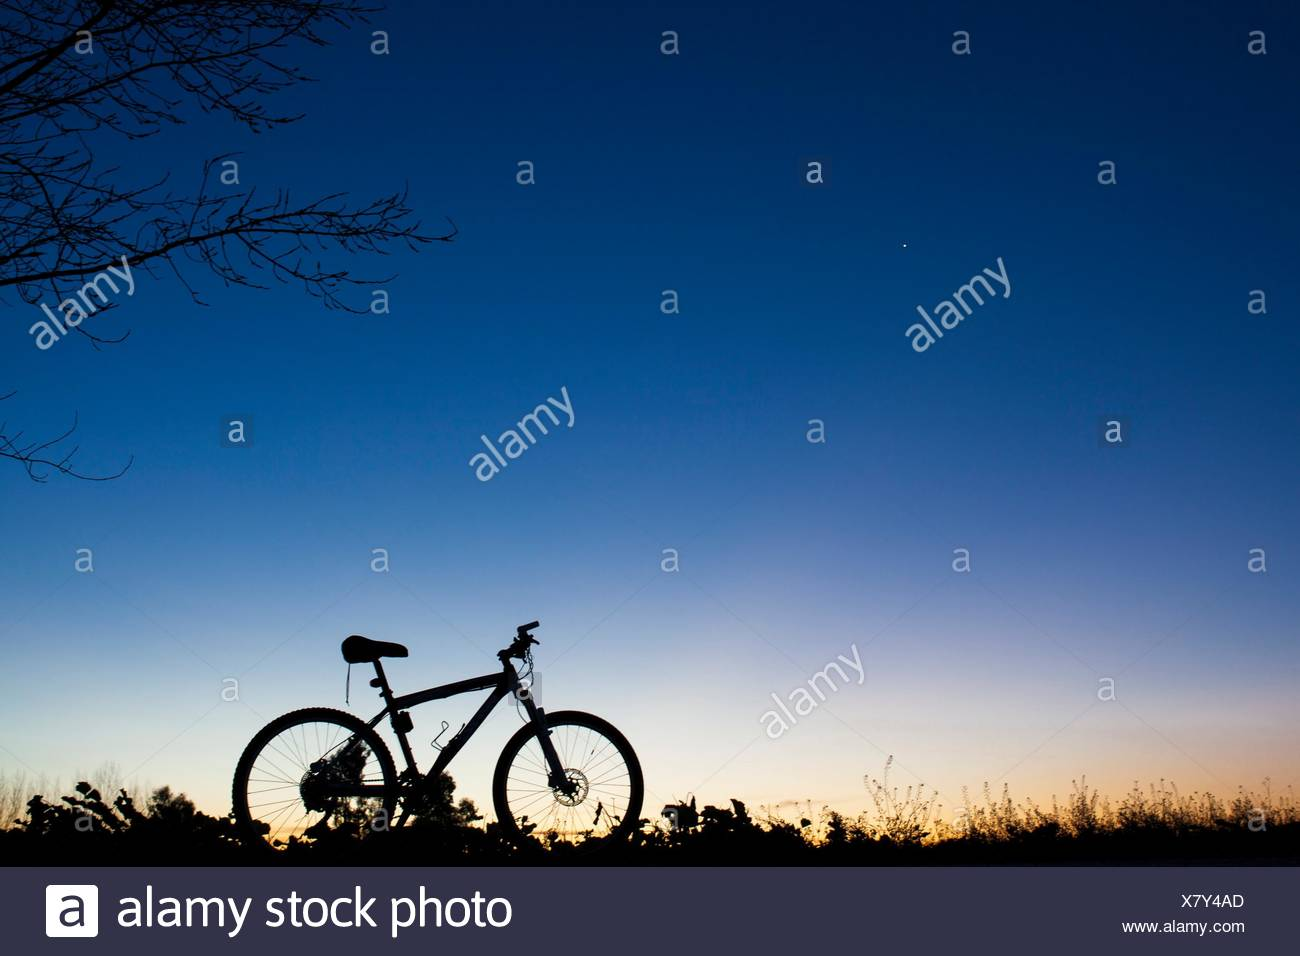 Silhouette of MTB bike at sunset under tree on blue sky with venus planet. - Stock Image